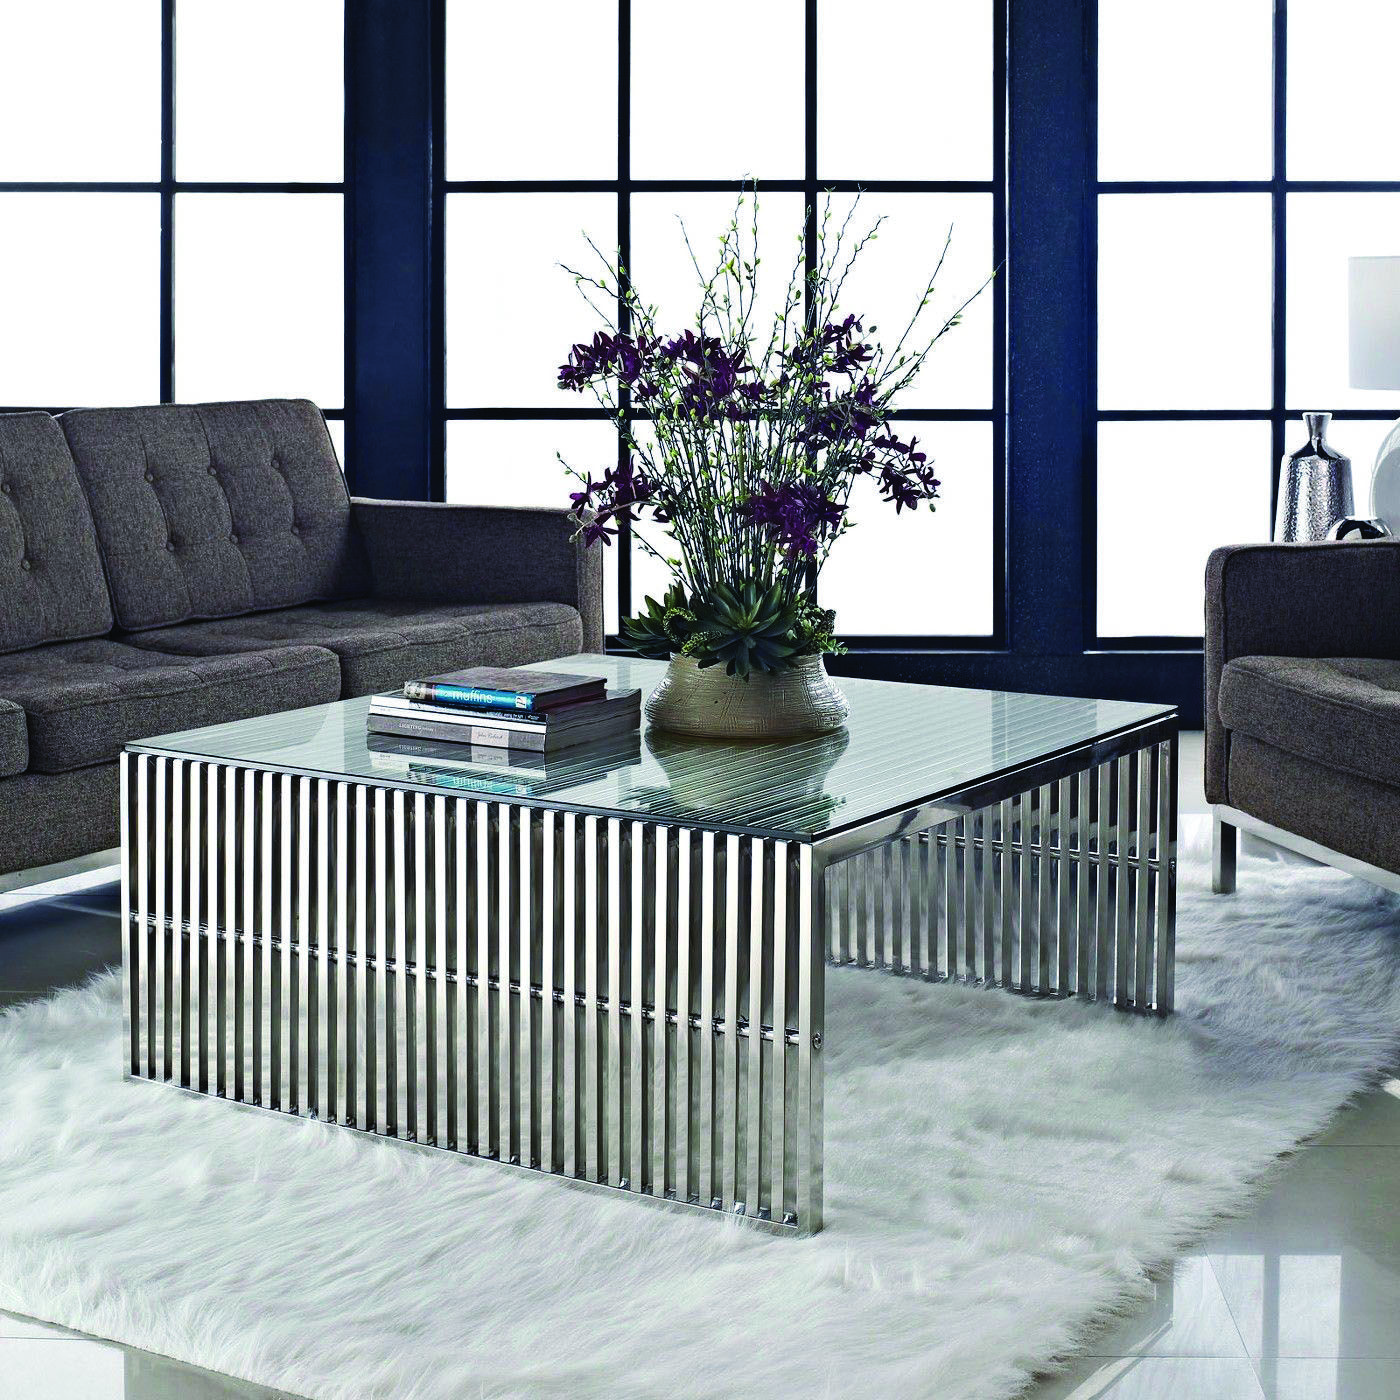 Advanced Coffee Tables For Sale Toowoomba That Will Impress You Cool Coffee Tables Coffee Table Unique Coffee Table [ 1400 x 1400 Pixel ]